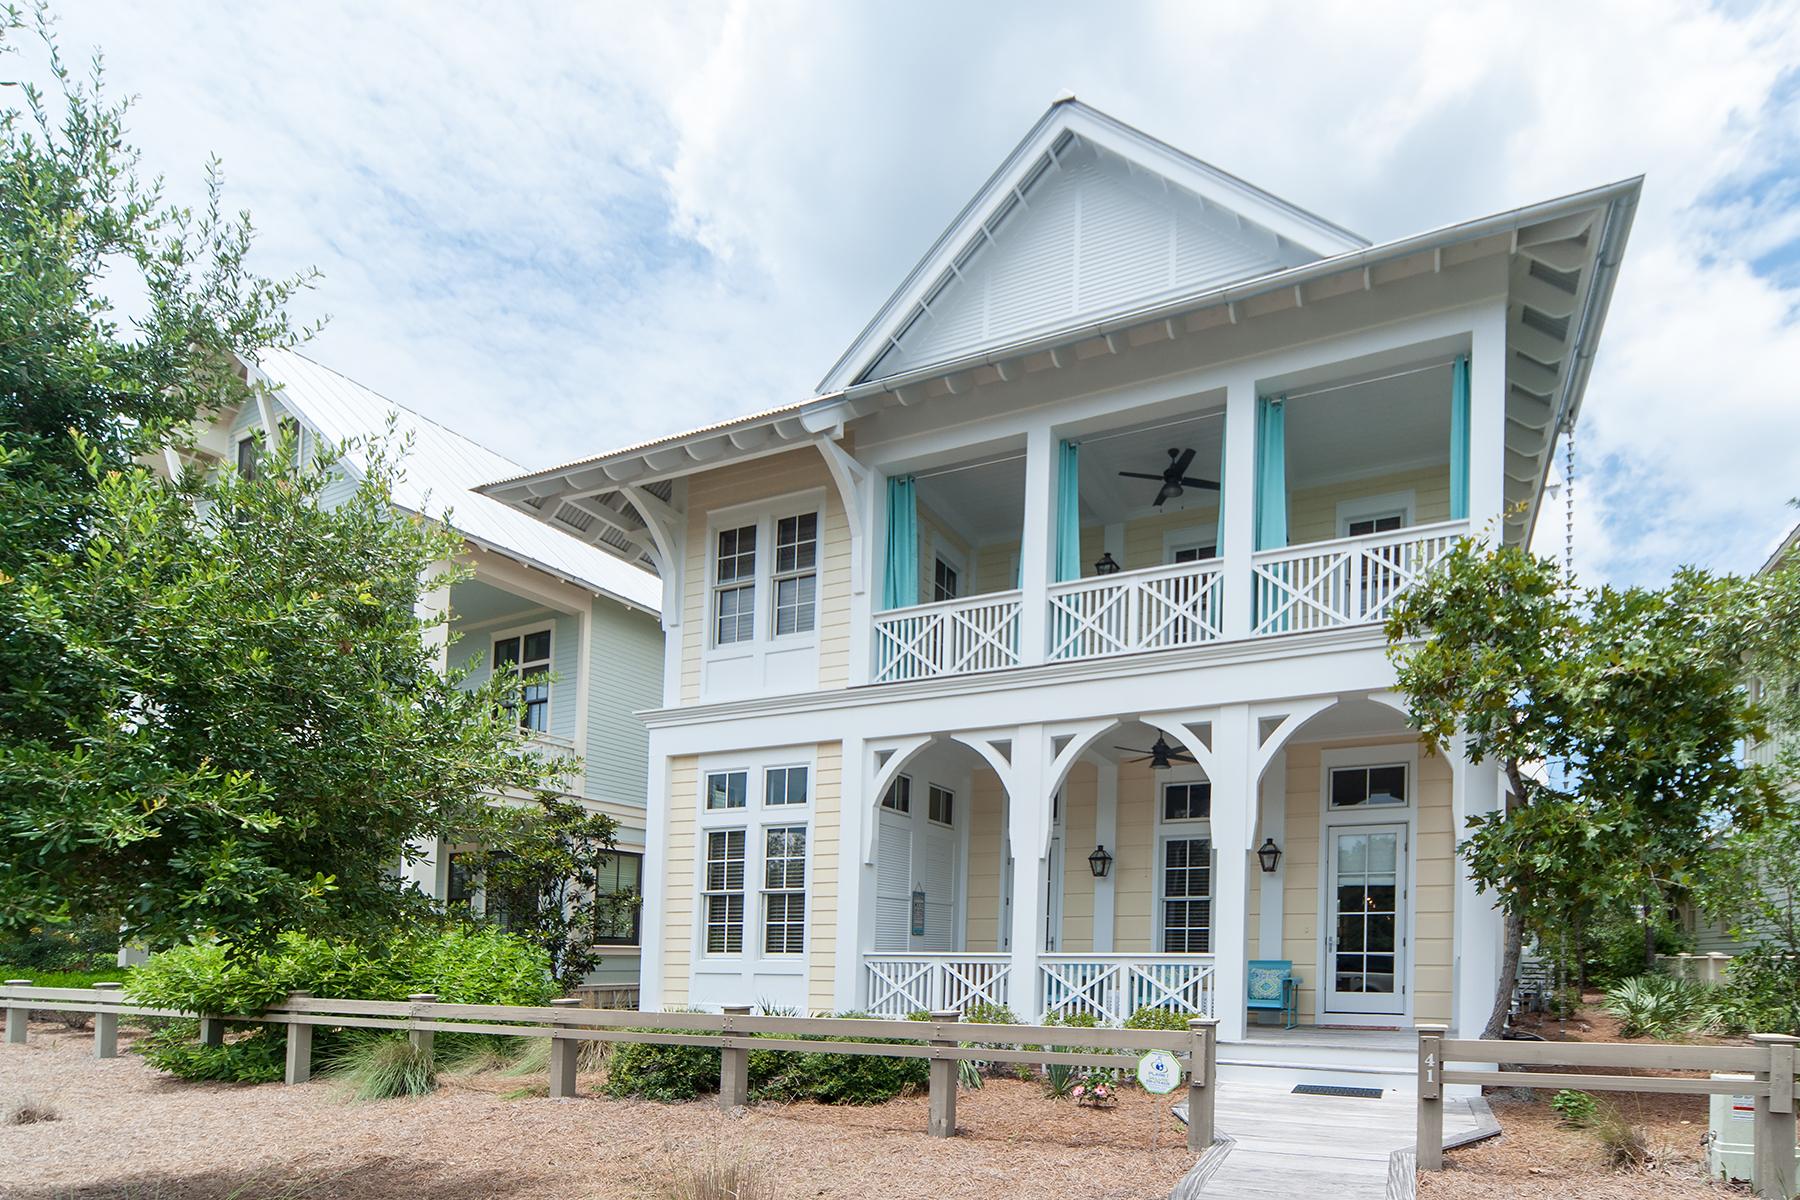 Nhà ở một gia đình vì Bán tại CUSTOM DESIGNED HOME IN SOUGHT AFTER WATERCOLOR 41 Mistflower Lane Watercolor, Santa Rosa Beach, Florida, 32459 Hoa Kỳ